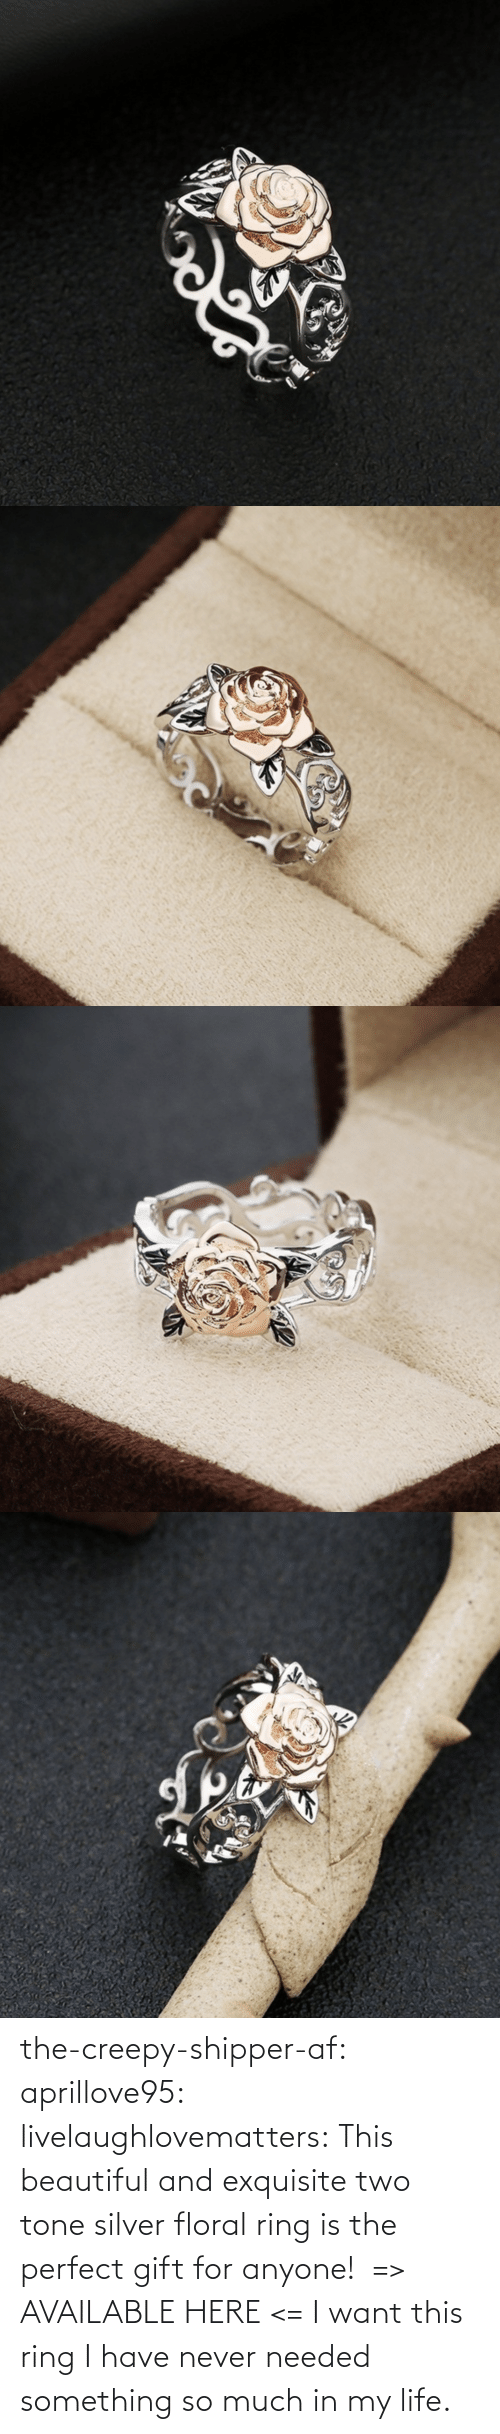 Creepy: the-creepy-shipper-af: aprillove95:  livelaughlovematters:  This beautiful and exquisite two tone silver floral ring is the perfect gift for anyone!  => AVAILABLE HERE <=    I want this ring   I have never needed something so much in my life.